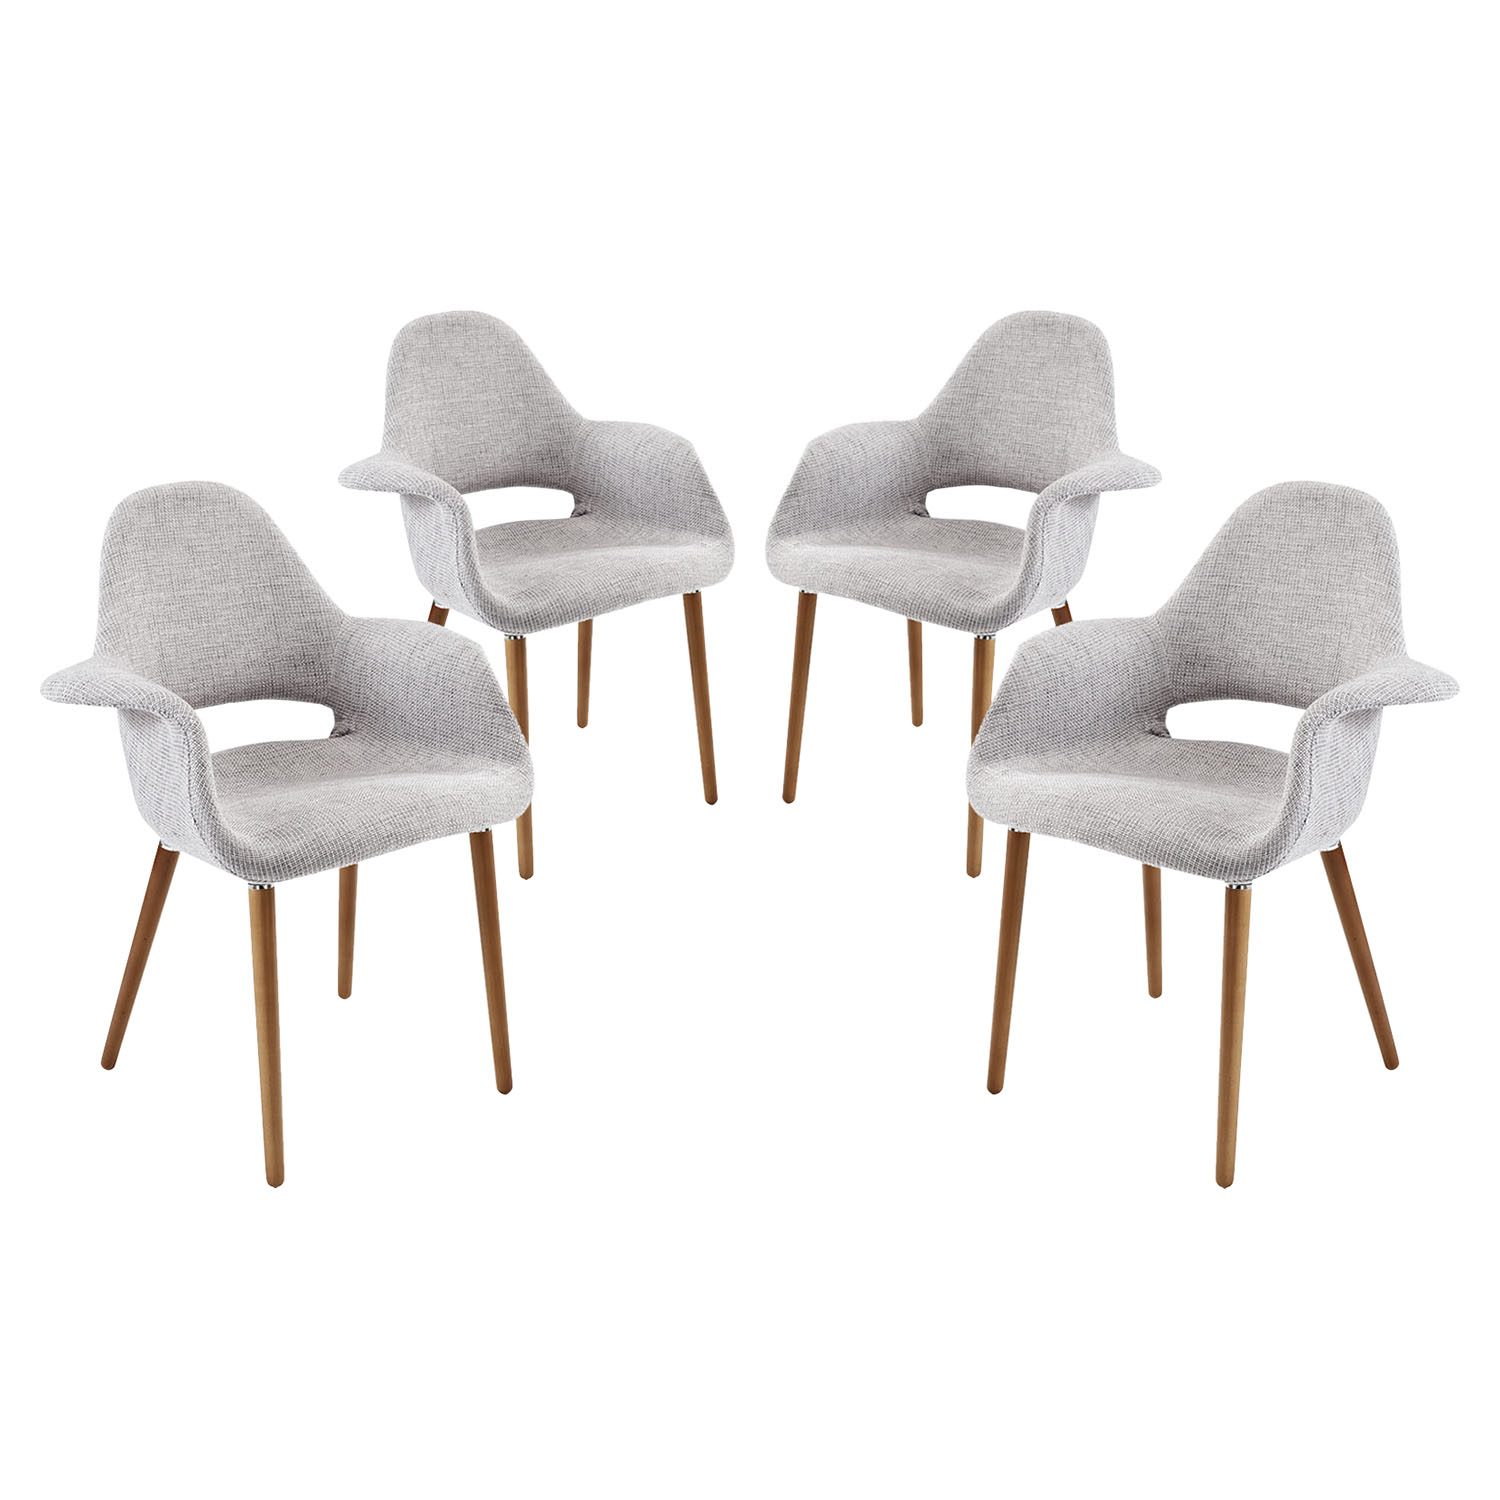 Aegis Dining Armchair - Wood Legs, Light Gray (Set of 4)